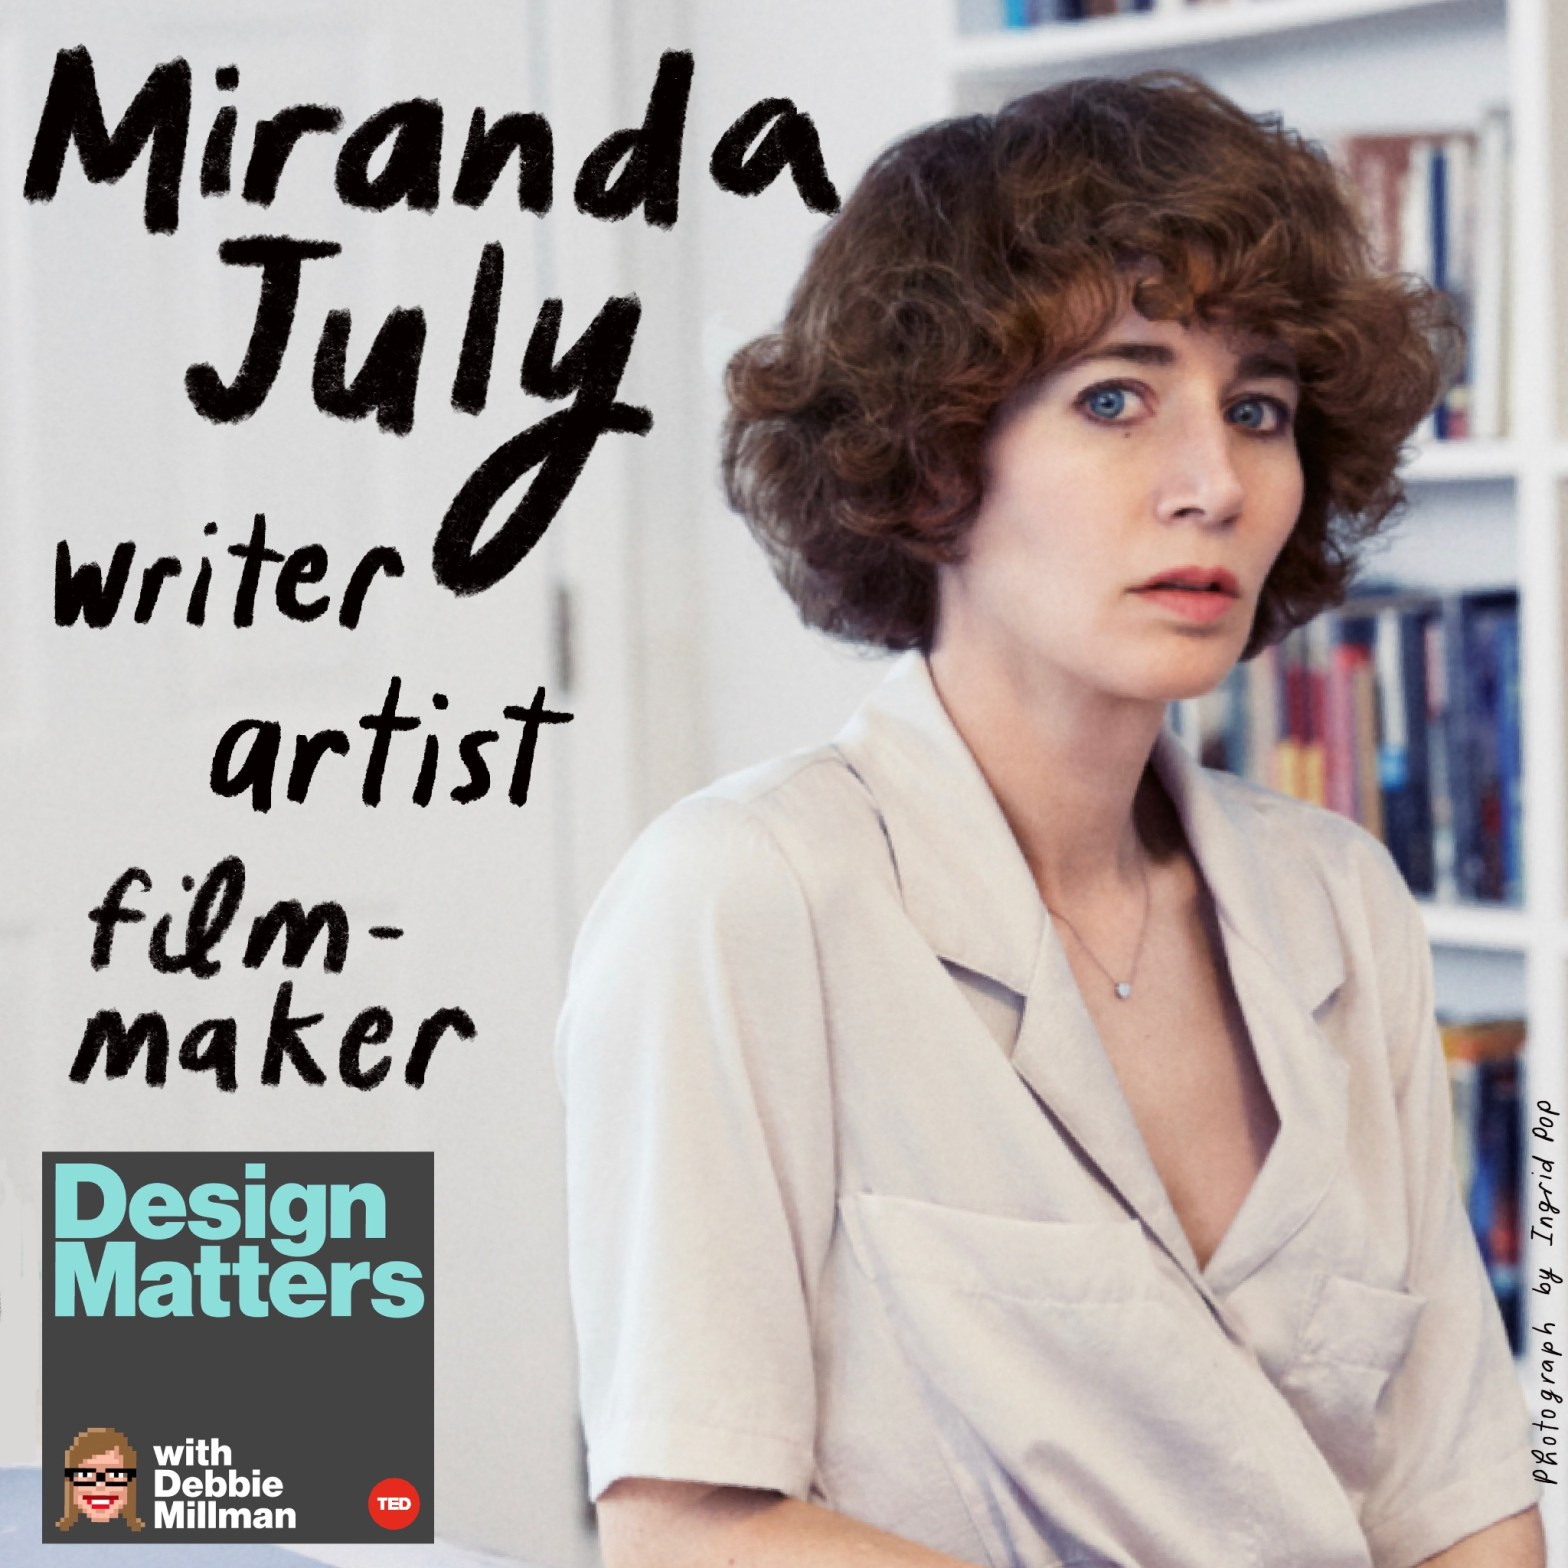 Thumbnail for Design Matters From the Archive: Miranda July